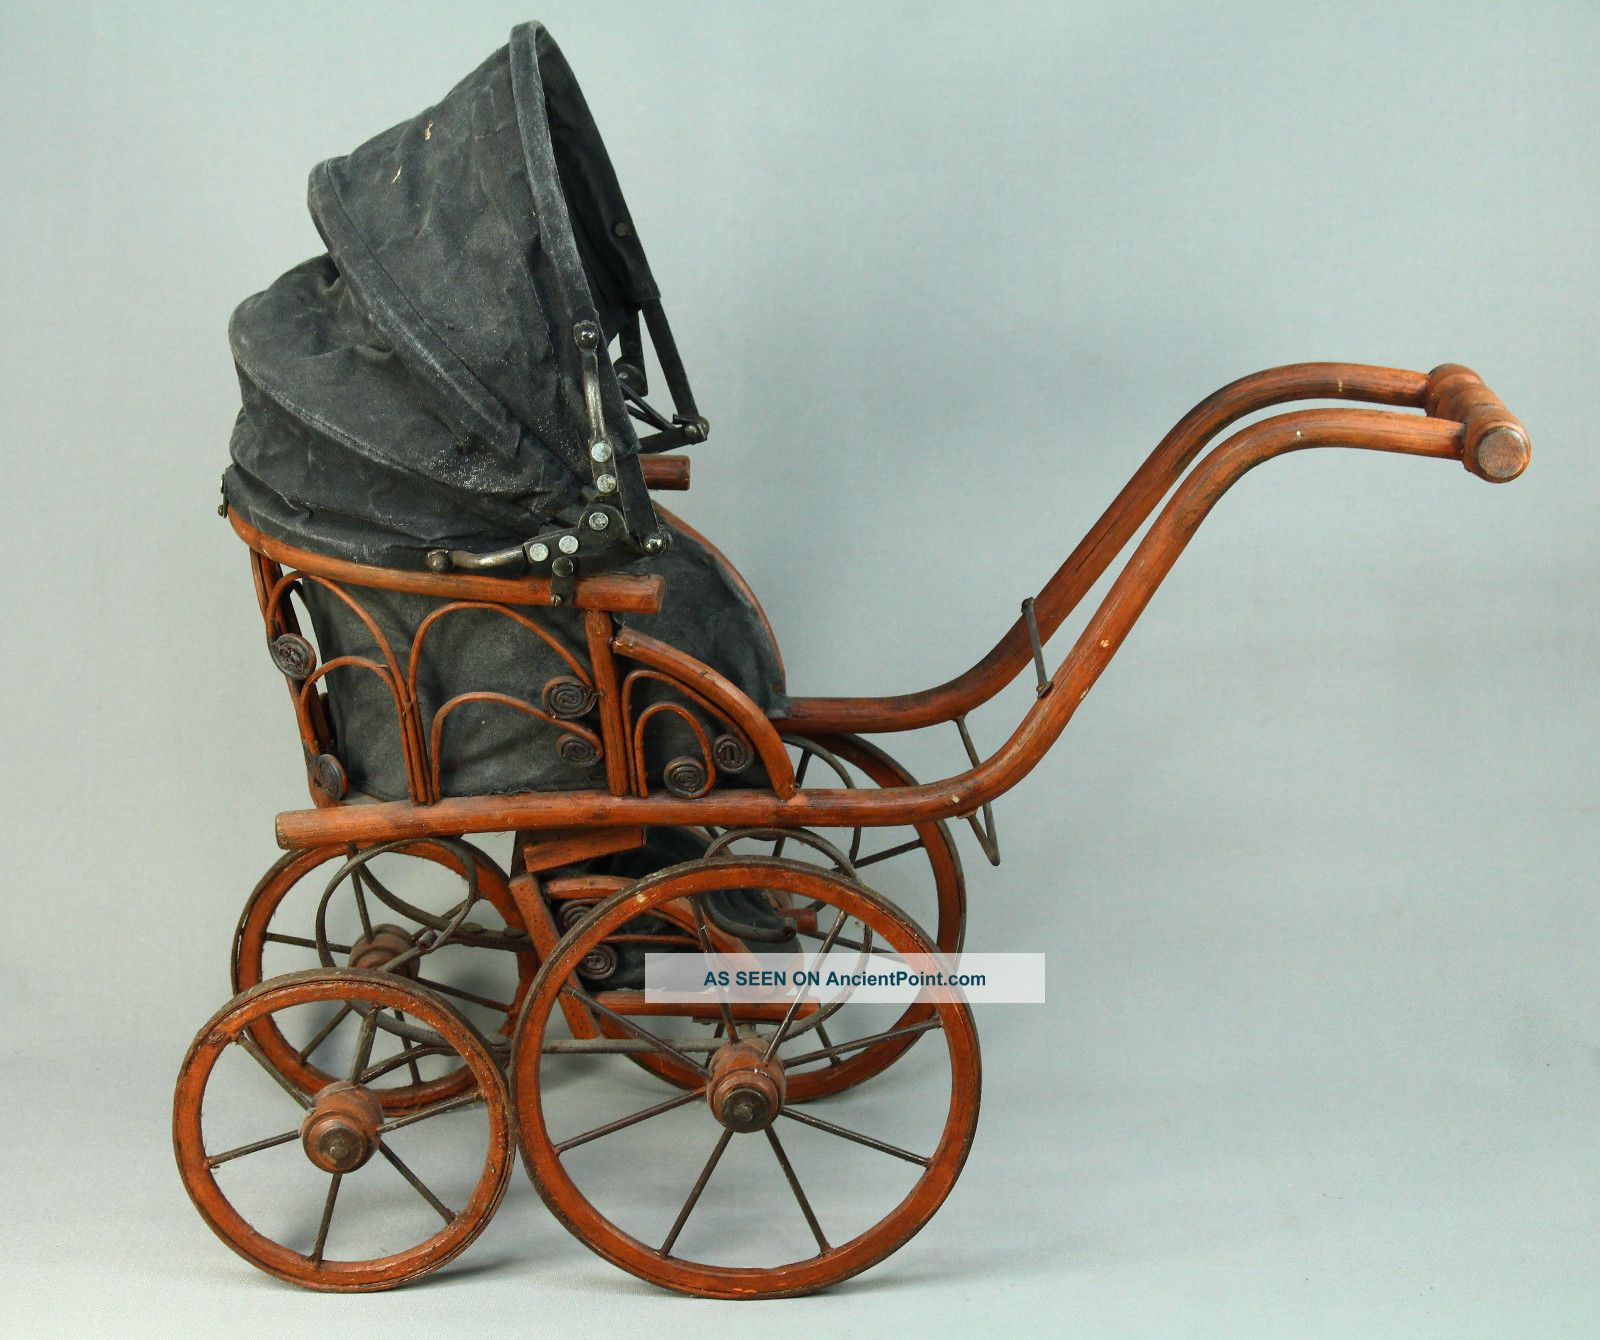 Antique Children ' S Doll Carriage Buggy Baby Stroller Rattan Wicker Baby Carriages & Buggies photo